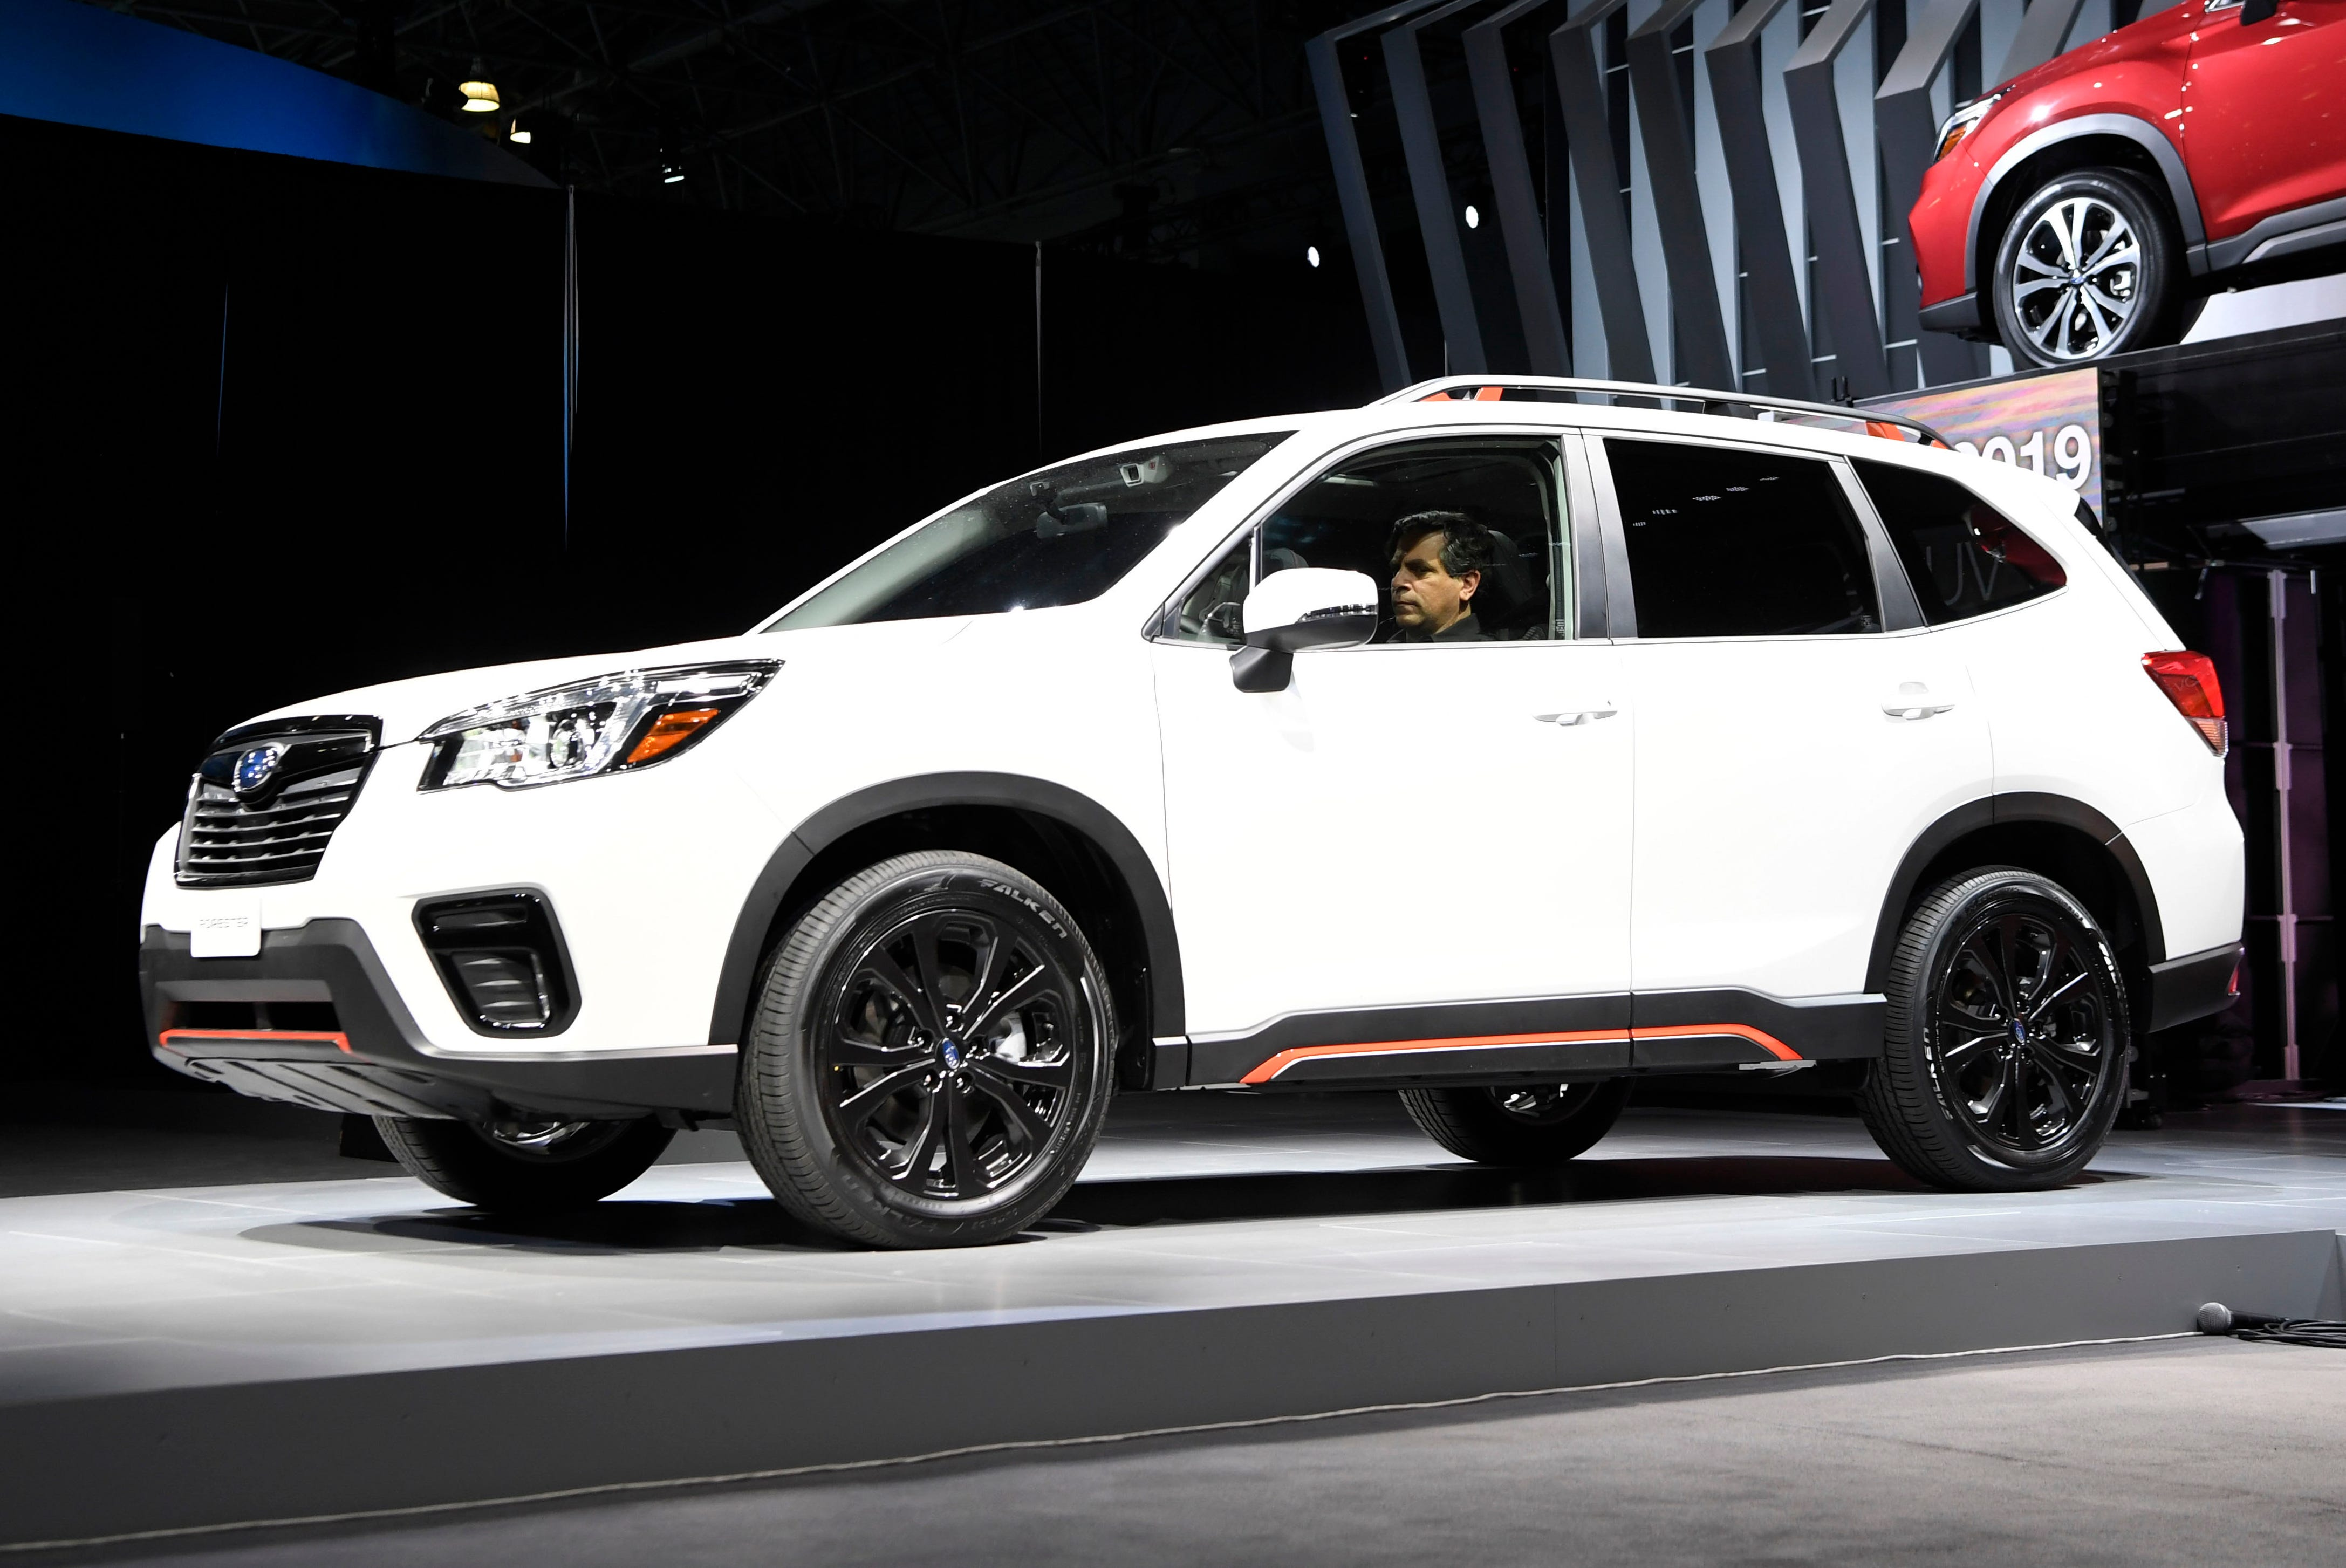 The 2019 Subaru Forester.